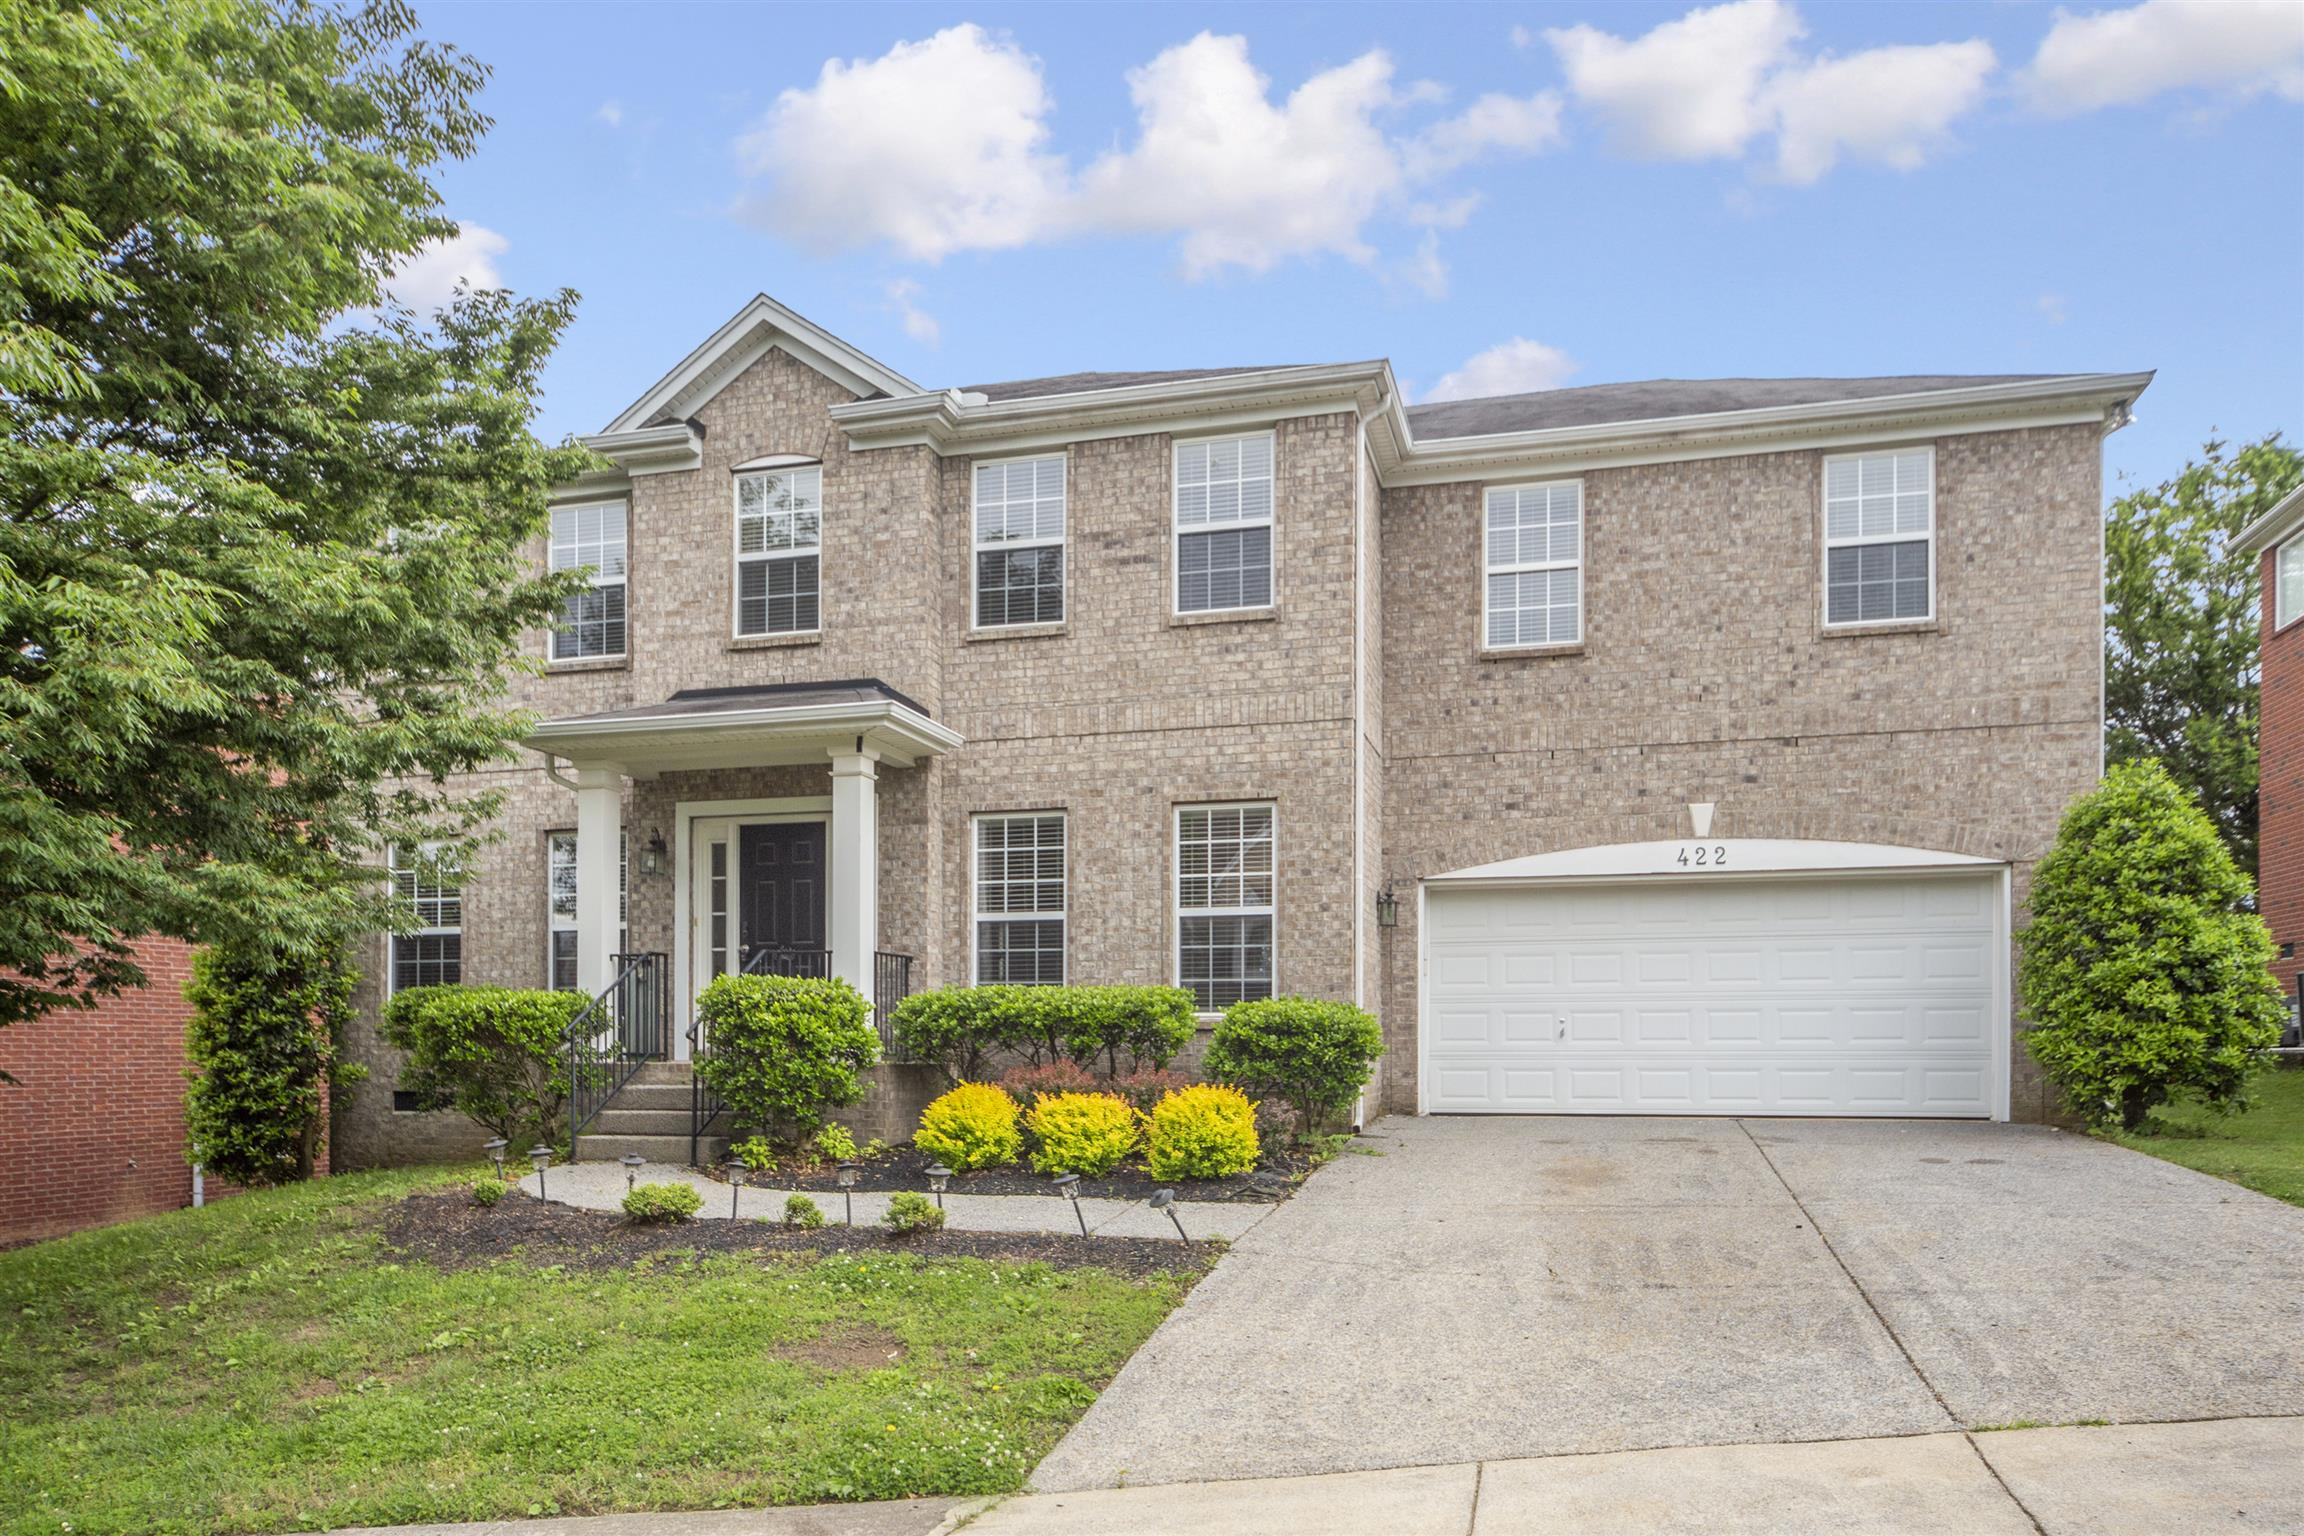 422 Laurel Hills Dr 37122 - One of Mount Juliet Homes for Sale